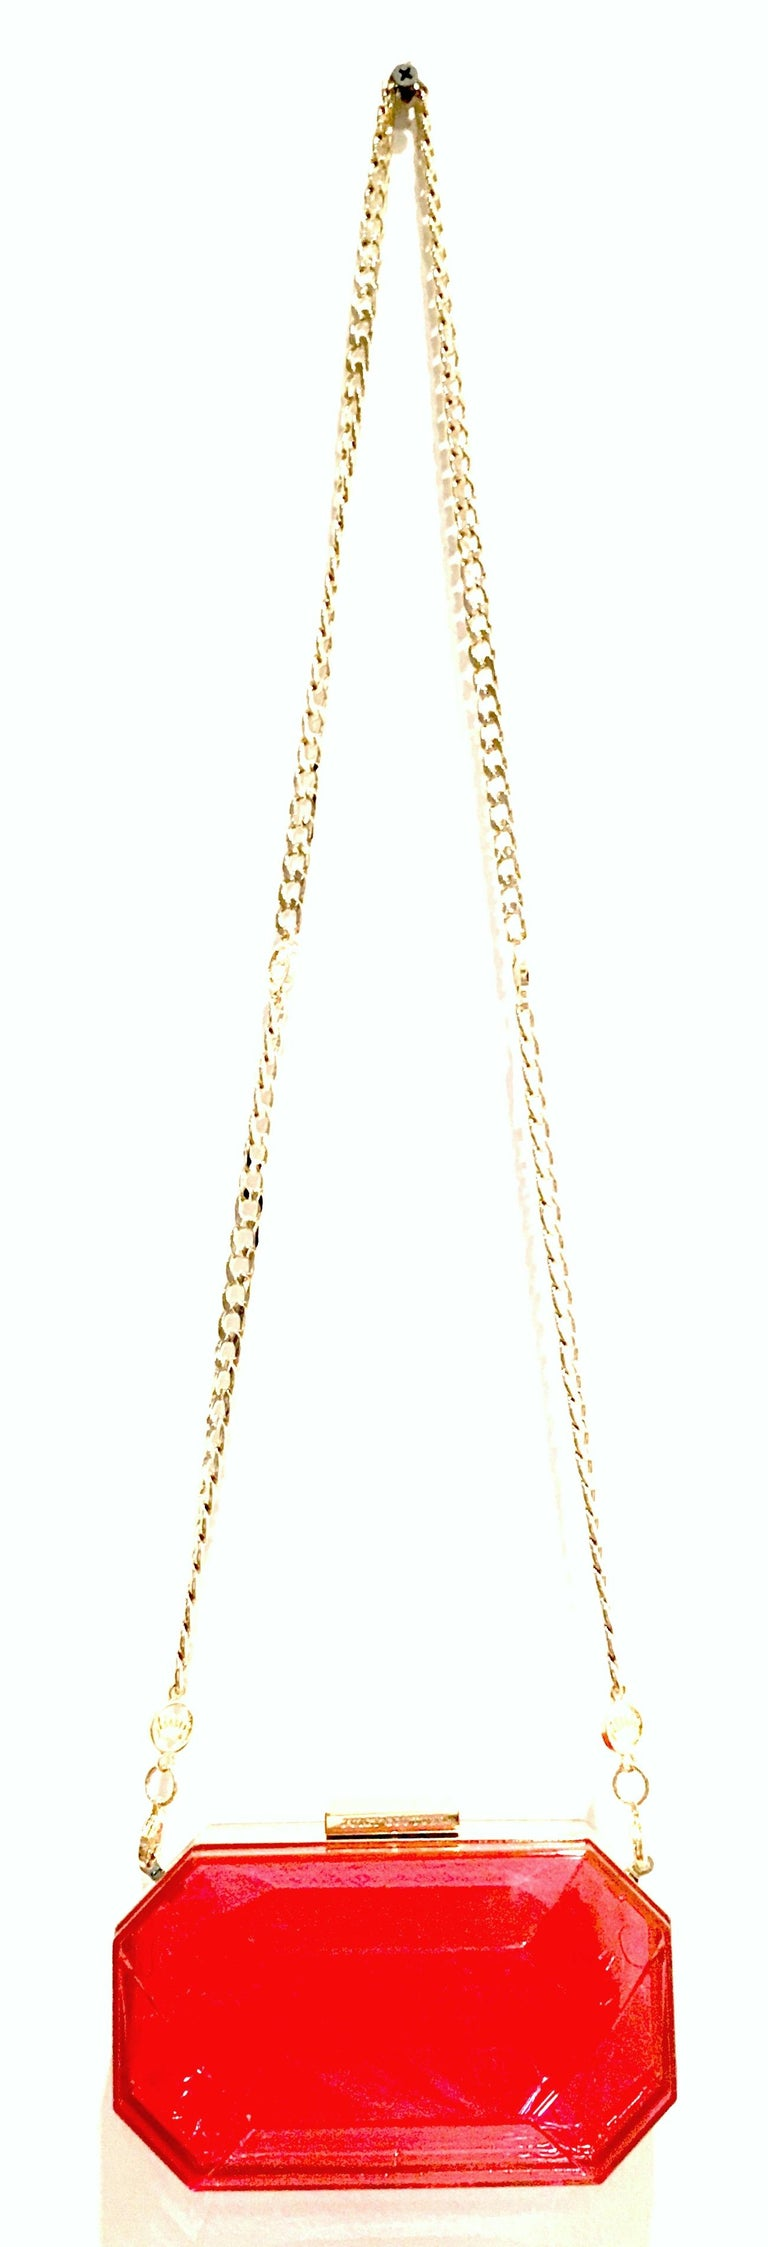 Red 21st Century Lucite & Gold Minaudiere Clutch Hand Bag By, Juicy Couture For Sale